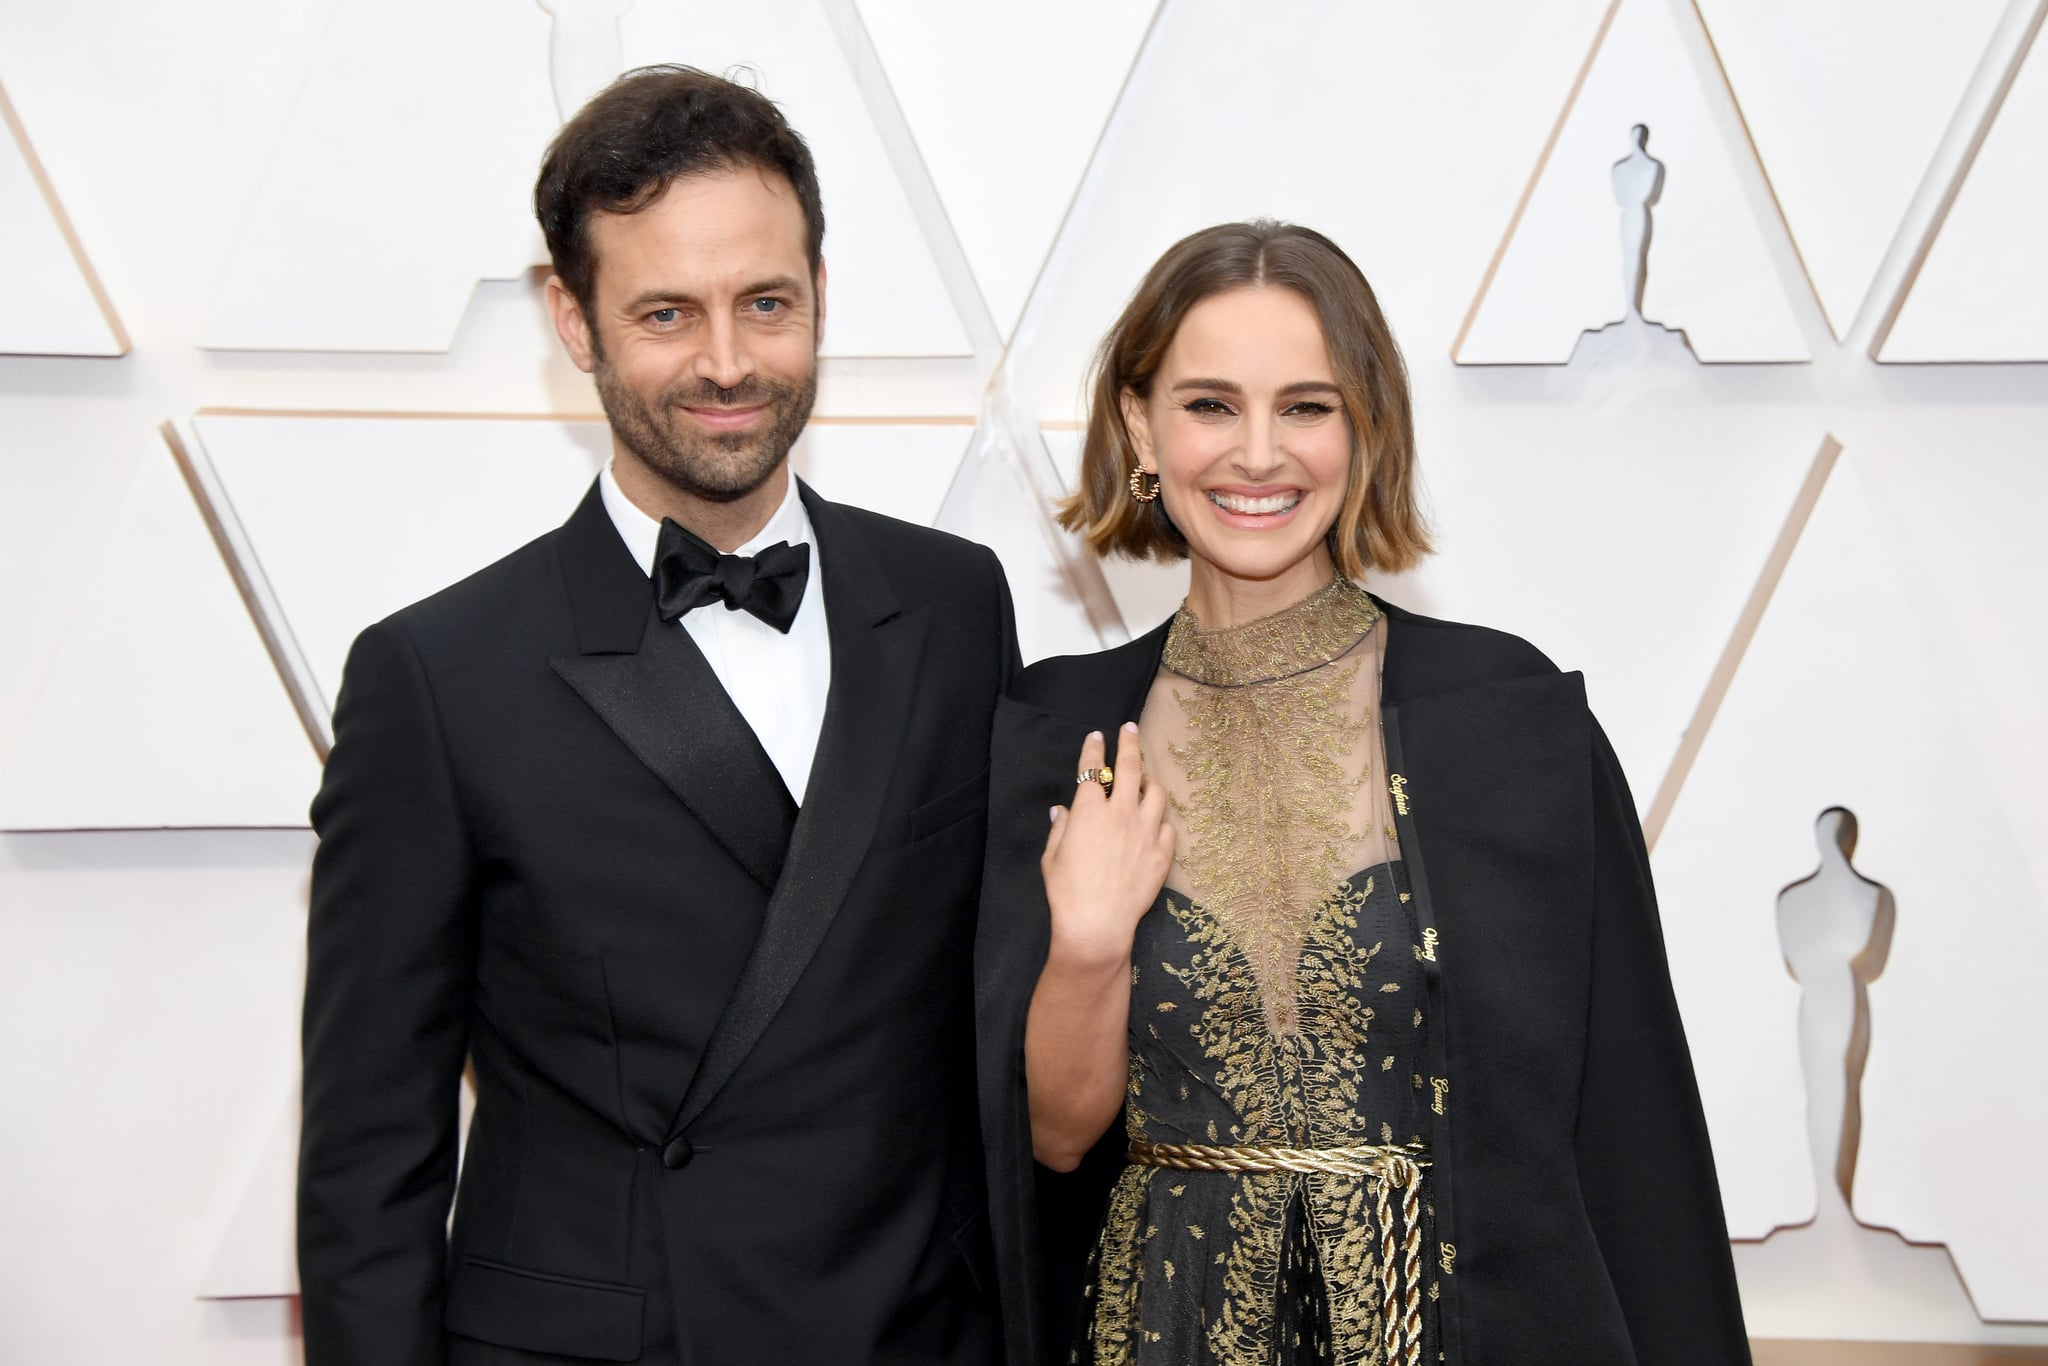 HOLLYWOOD, CALIFORNIA - FEBRUARY 09: (L-R) Choreographer Benjamin Millepied and Natalie Portman attend the 92nd Annual Academy Awards at Hollywood and Highland on February 09, 2020 in Hollywood, California. (Photo by Kevin Mazur/Getty Images)